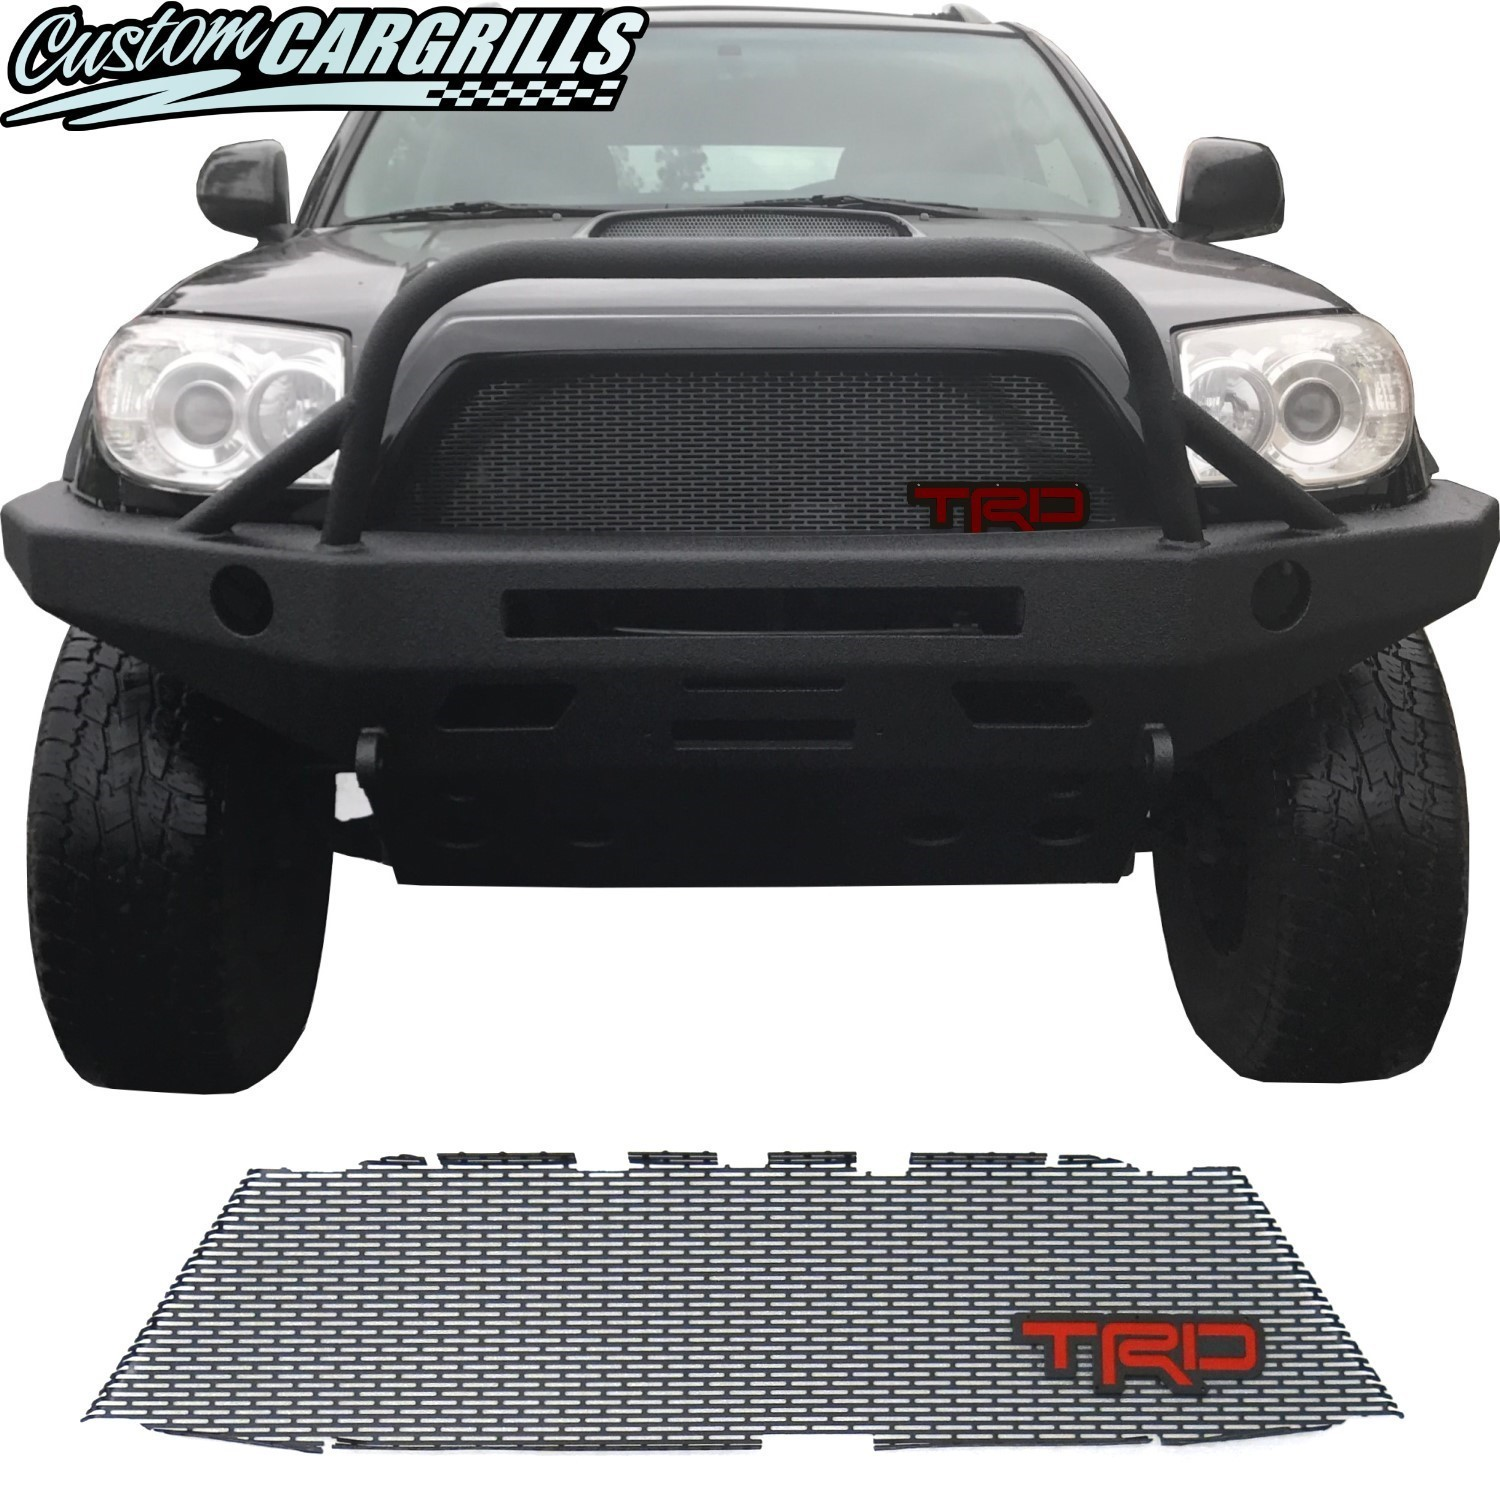 2006-09 Toyota 4Runner Grill Mesh with TRD Emblem